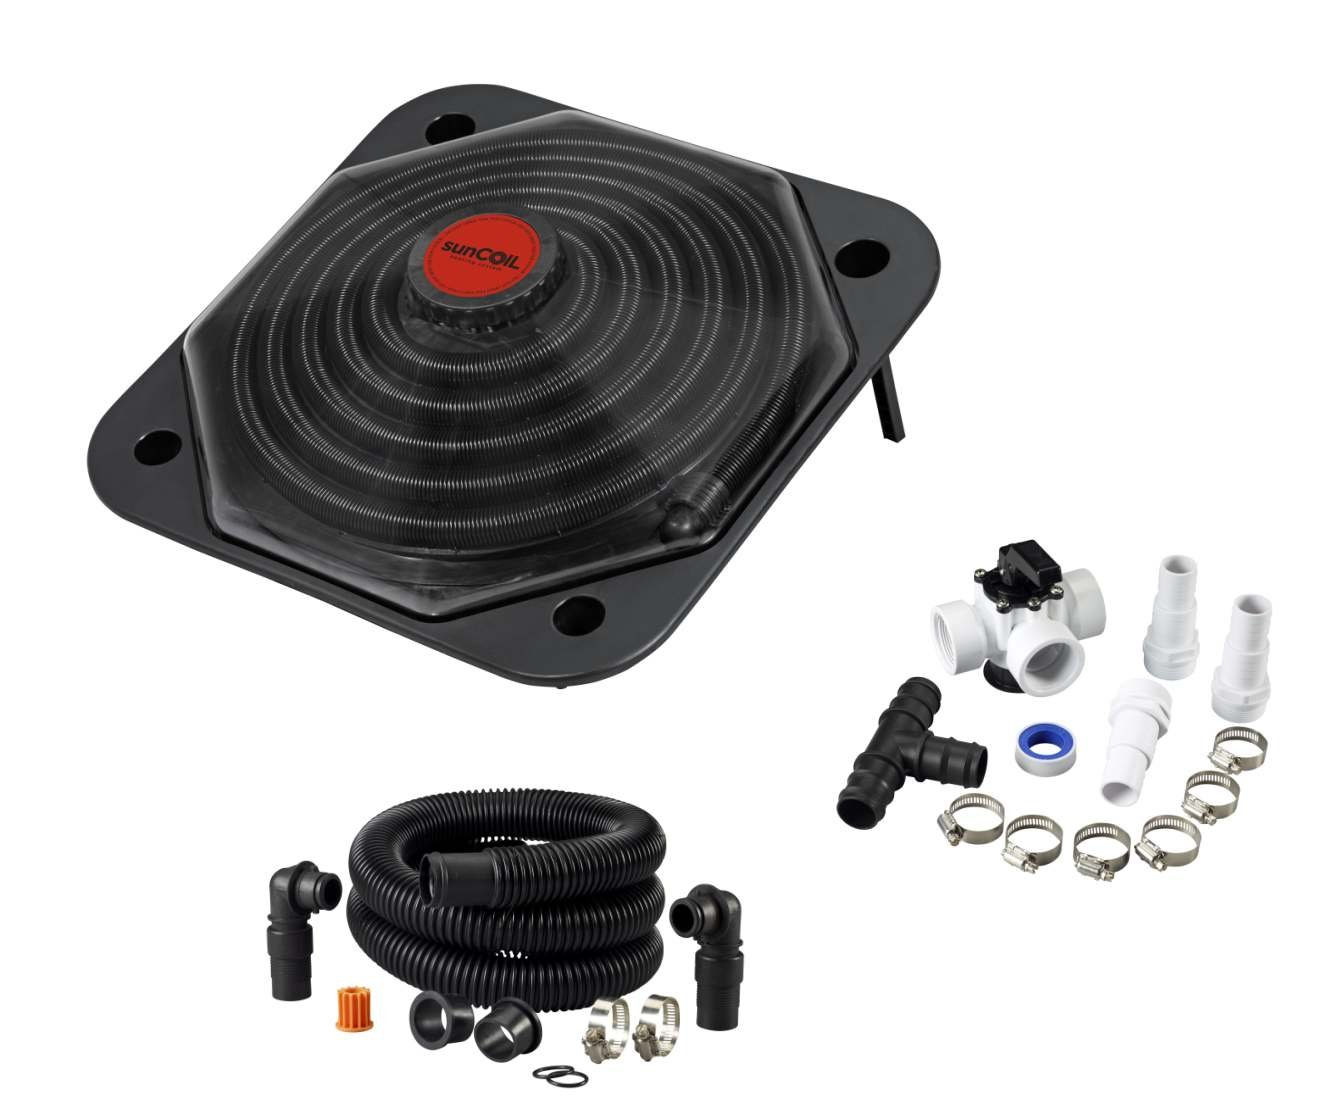 sunCOIL - Solar Heater for Above Ground Pools with Free Diverter Valve Kit ($49.00 Value) by sunCOIL